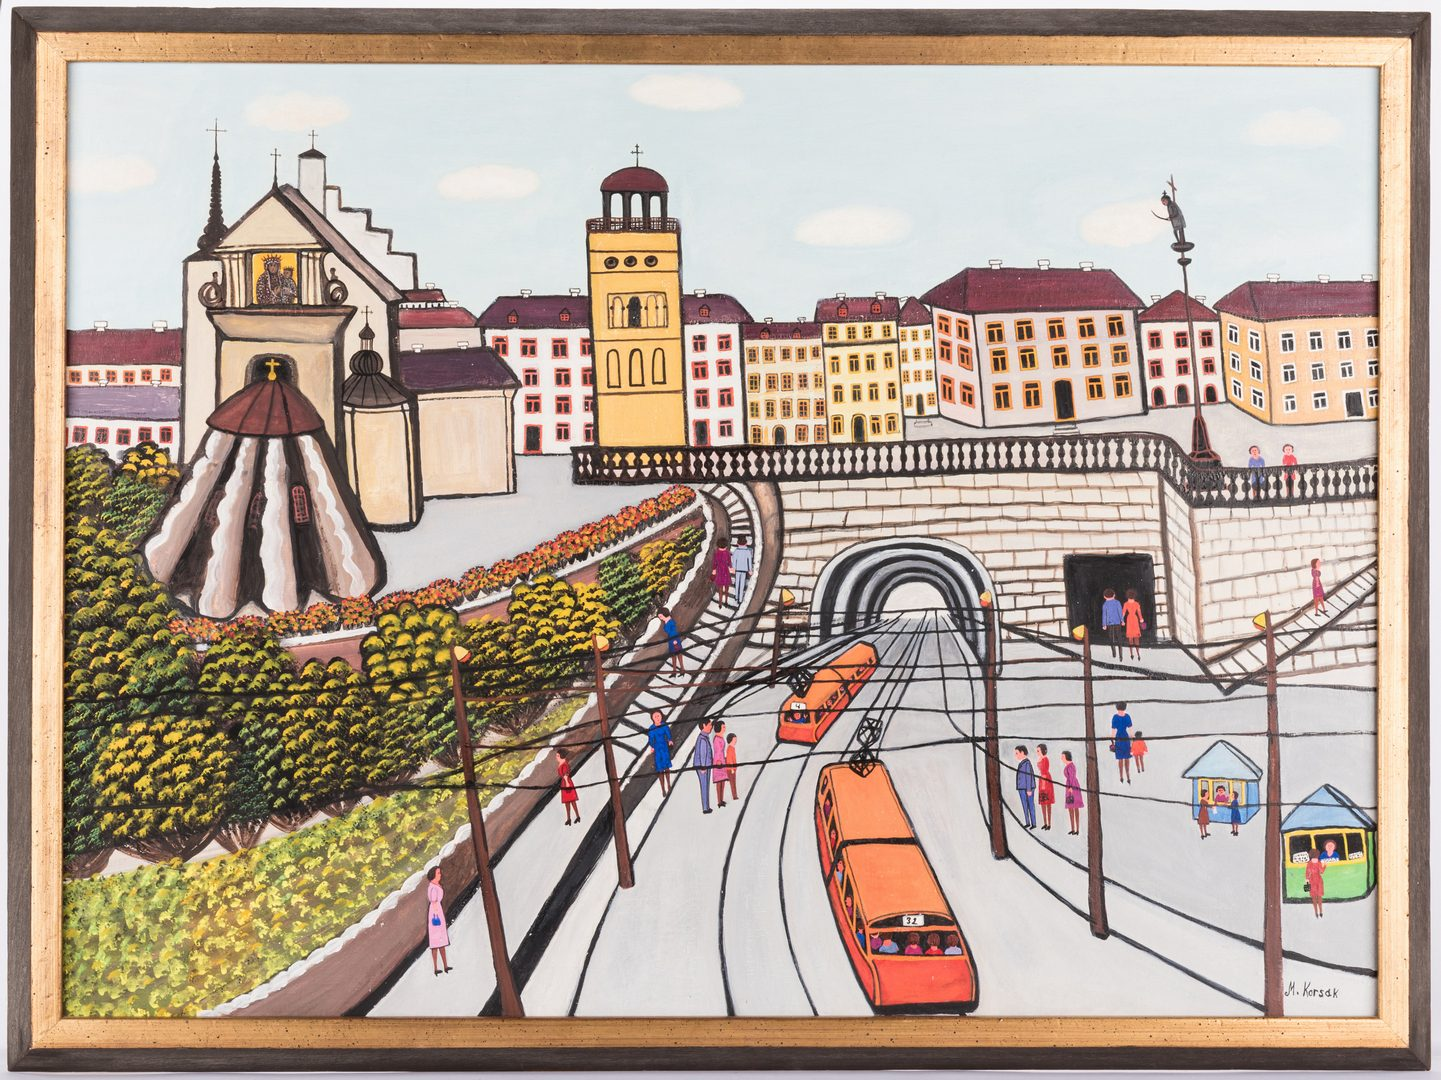 Lot 153: M. Korsak Painting – Cityscape